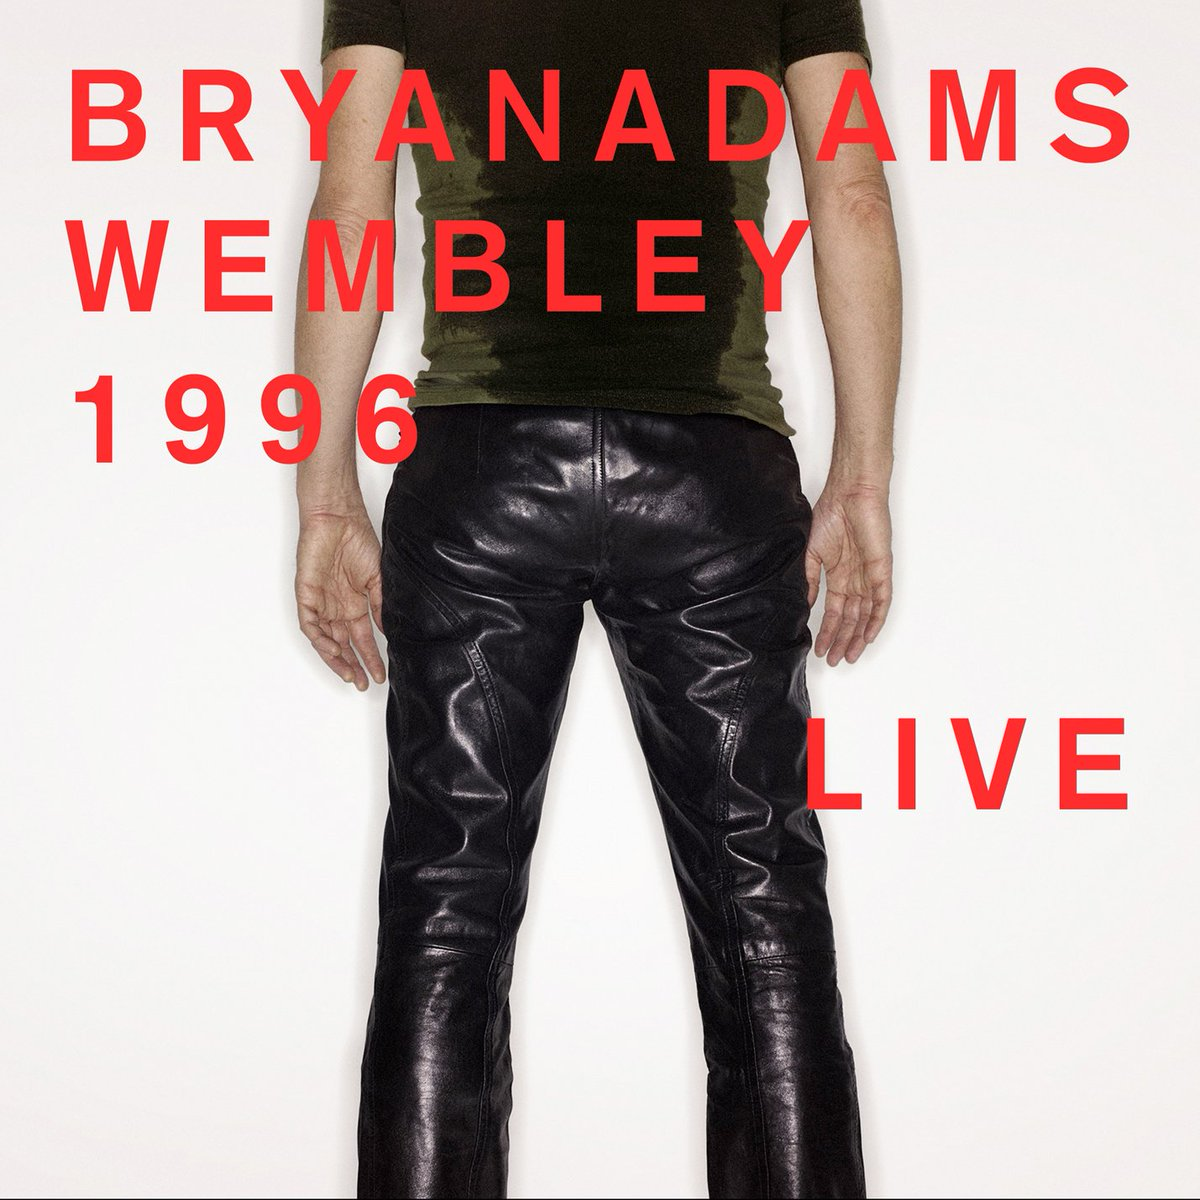 NEW CD of Wembley 1996' coming June 30th! Have a listen to some of the concert here now: https://t.co/kqsI9FQ3dp https://t.co/iuFw1LFFGg